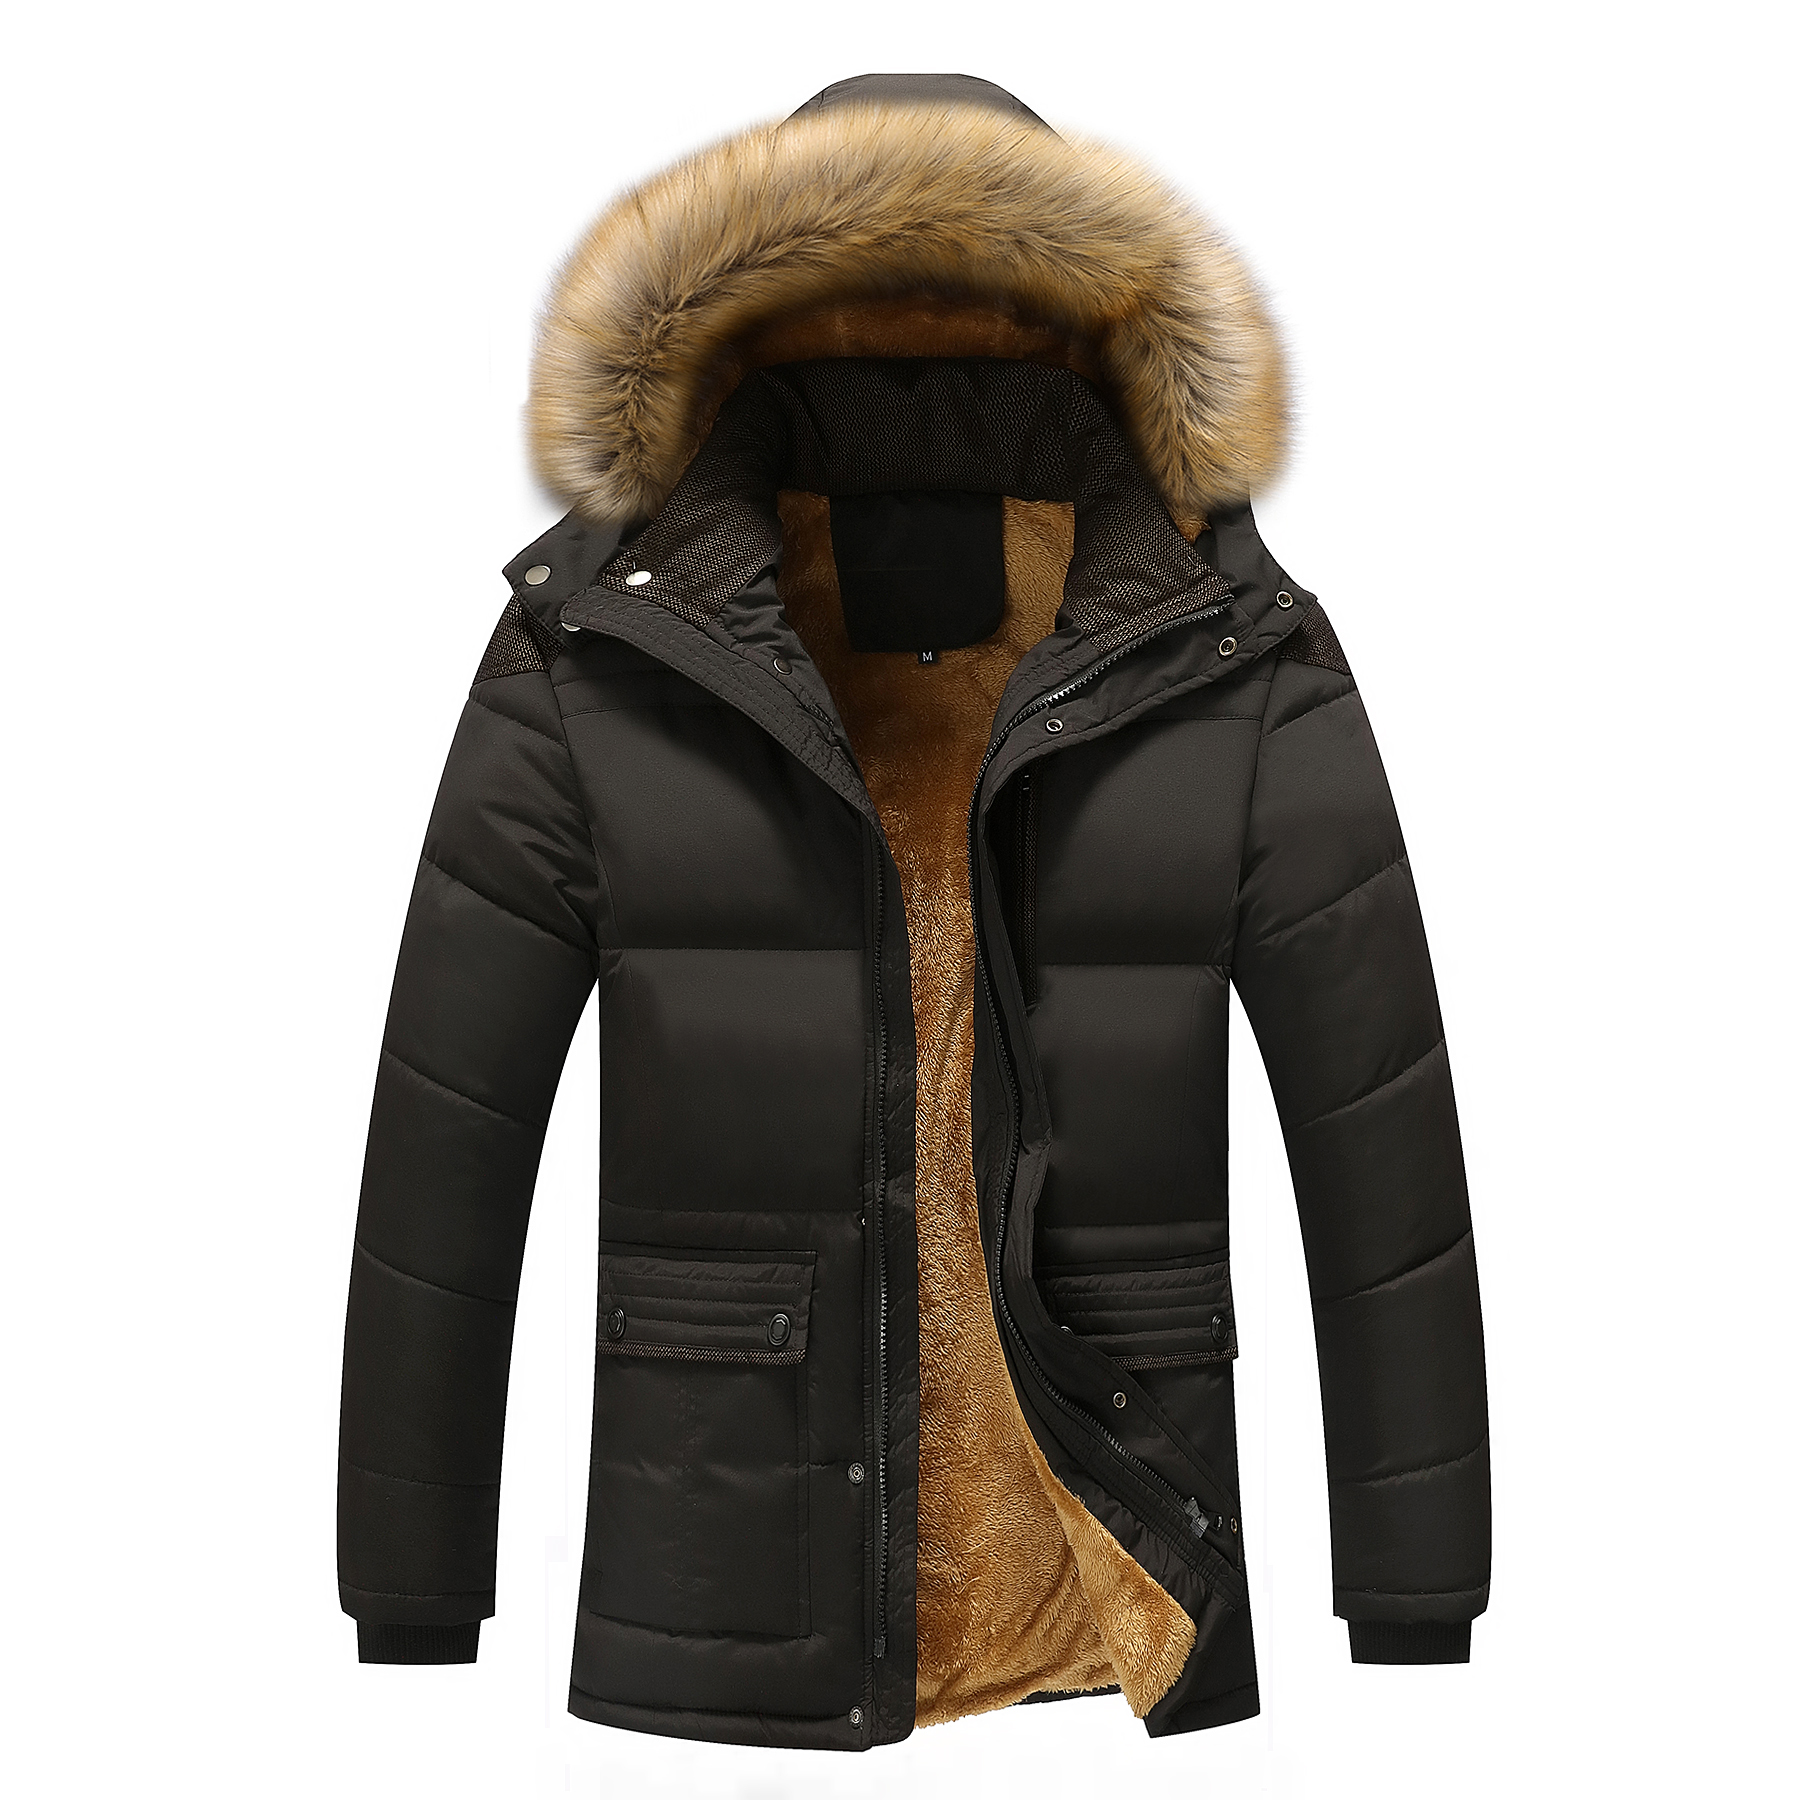 Winter Jacket Men Brand Hooded Solid Coat Men Thick Thicken Warm Mens Winter Windproof High Quality Male Parka M-5XL;YA503